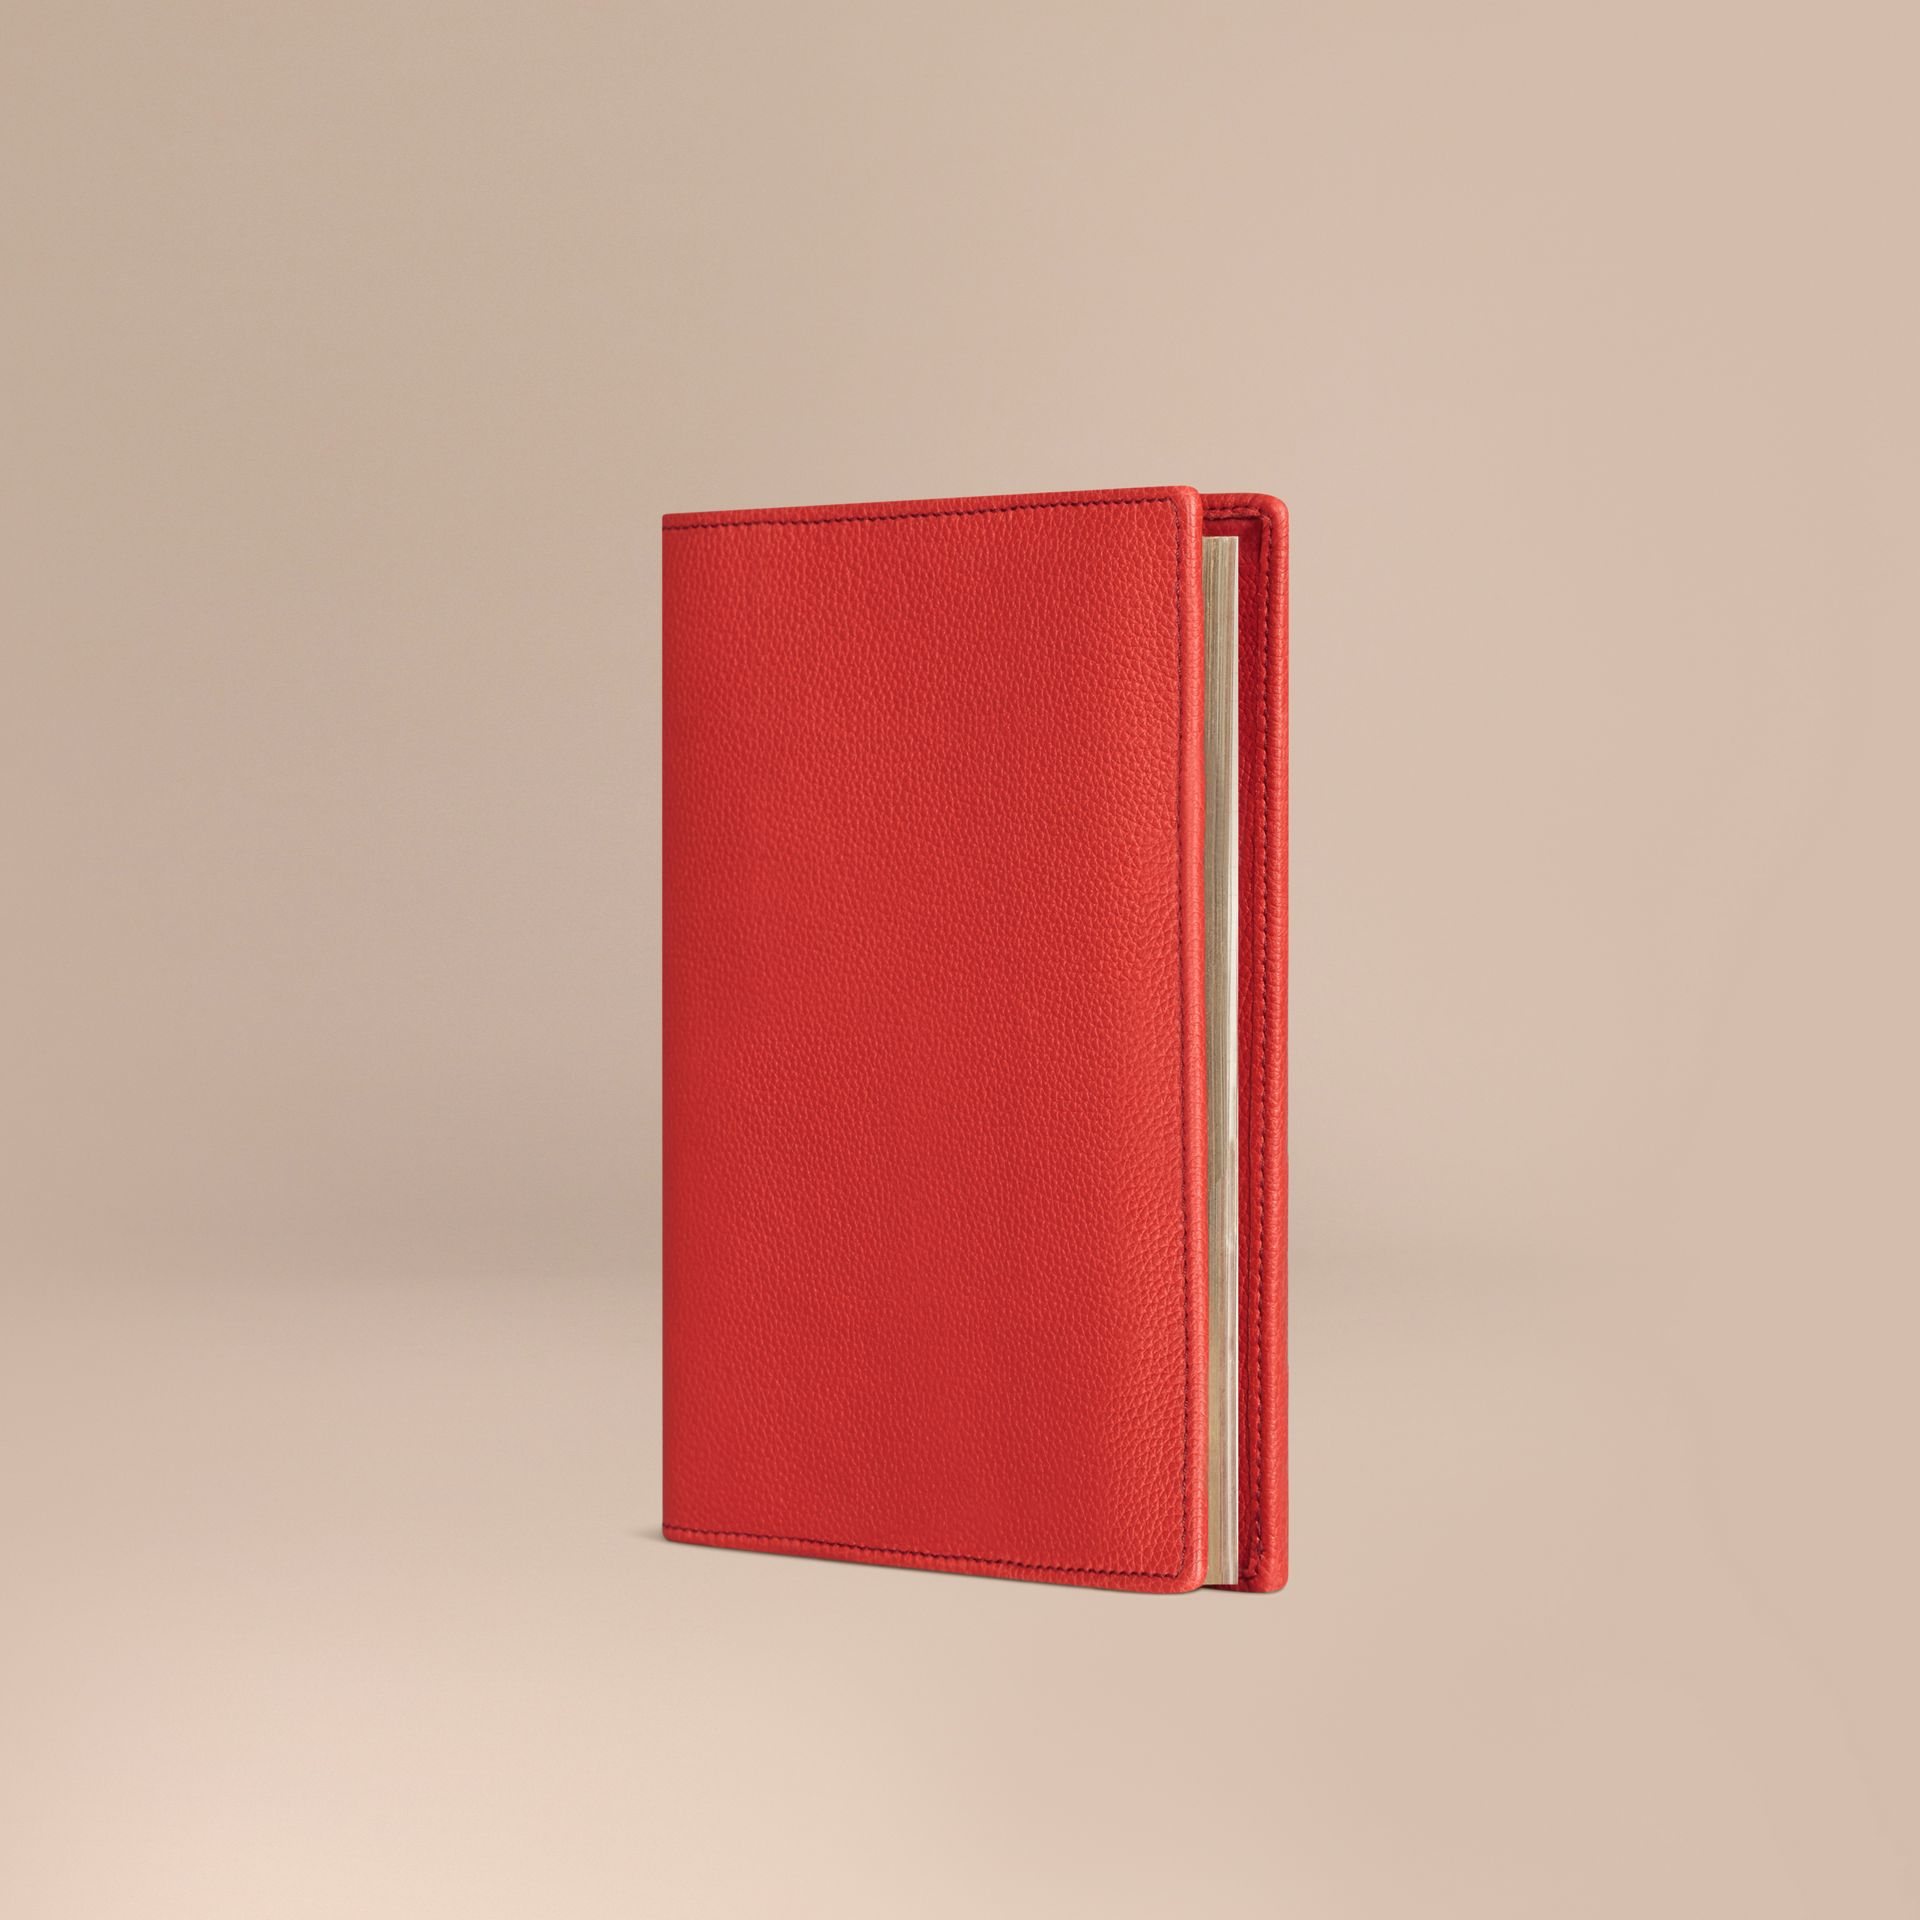 Grainy Leather 18 Month 2016/17 A5 Diary Orange Red - gallery image 1